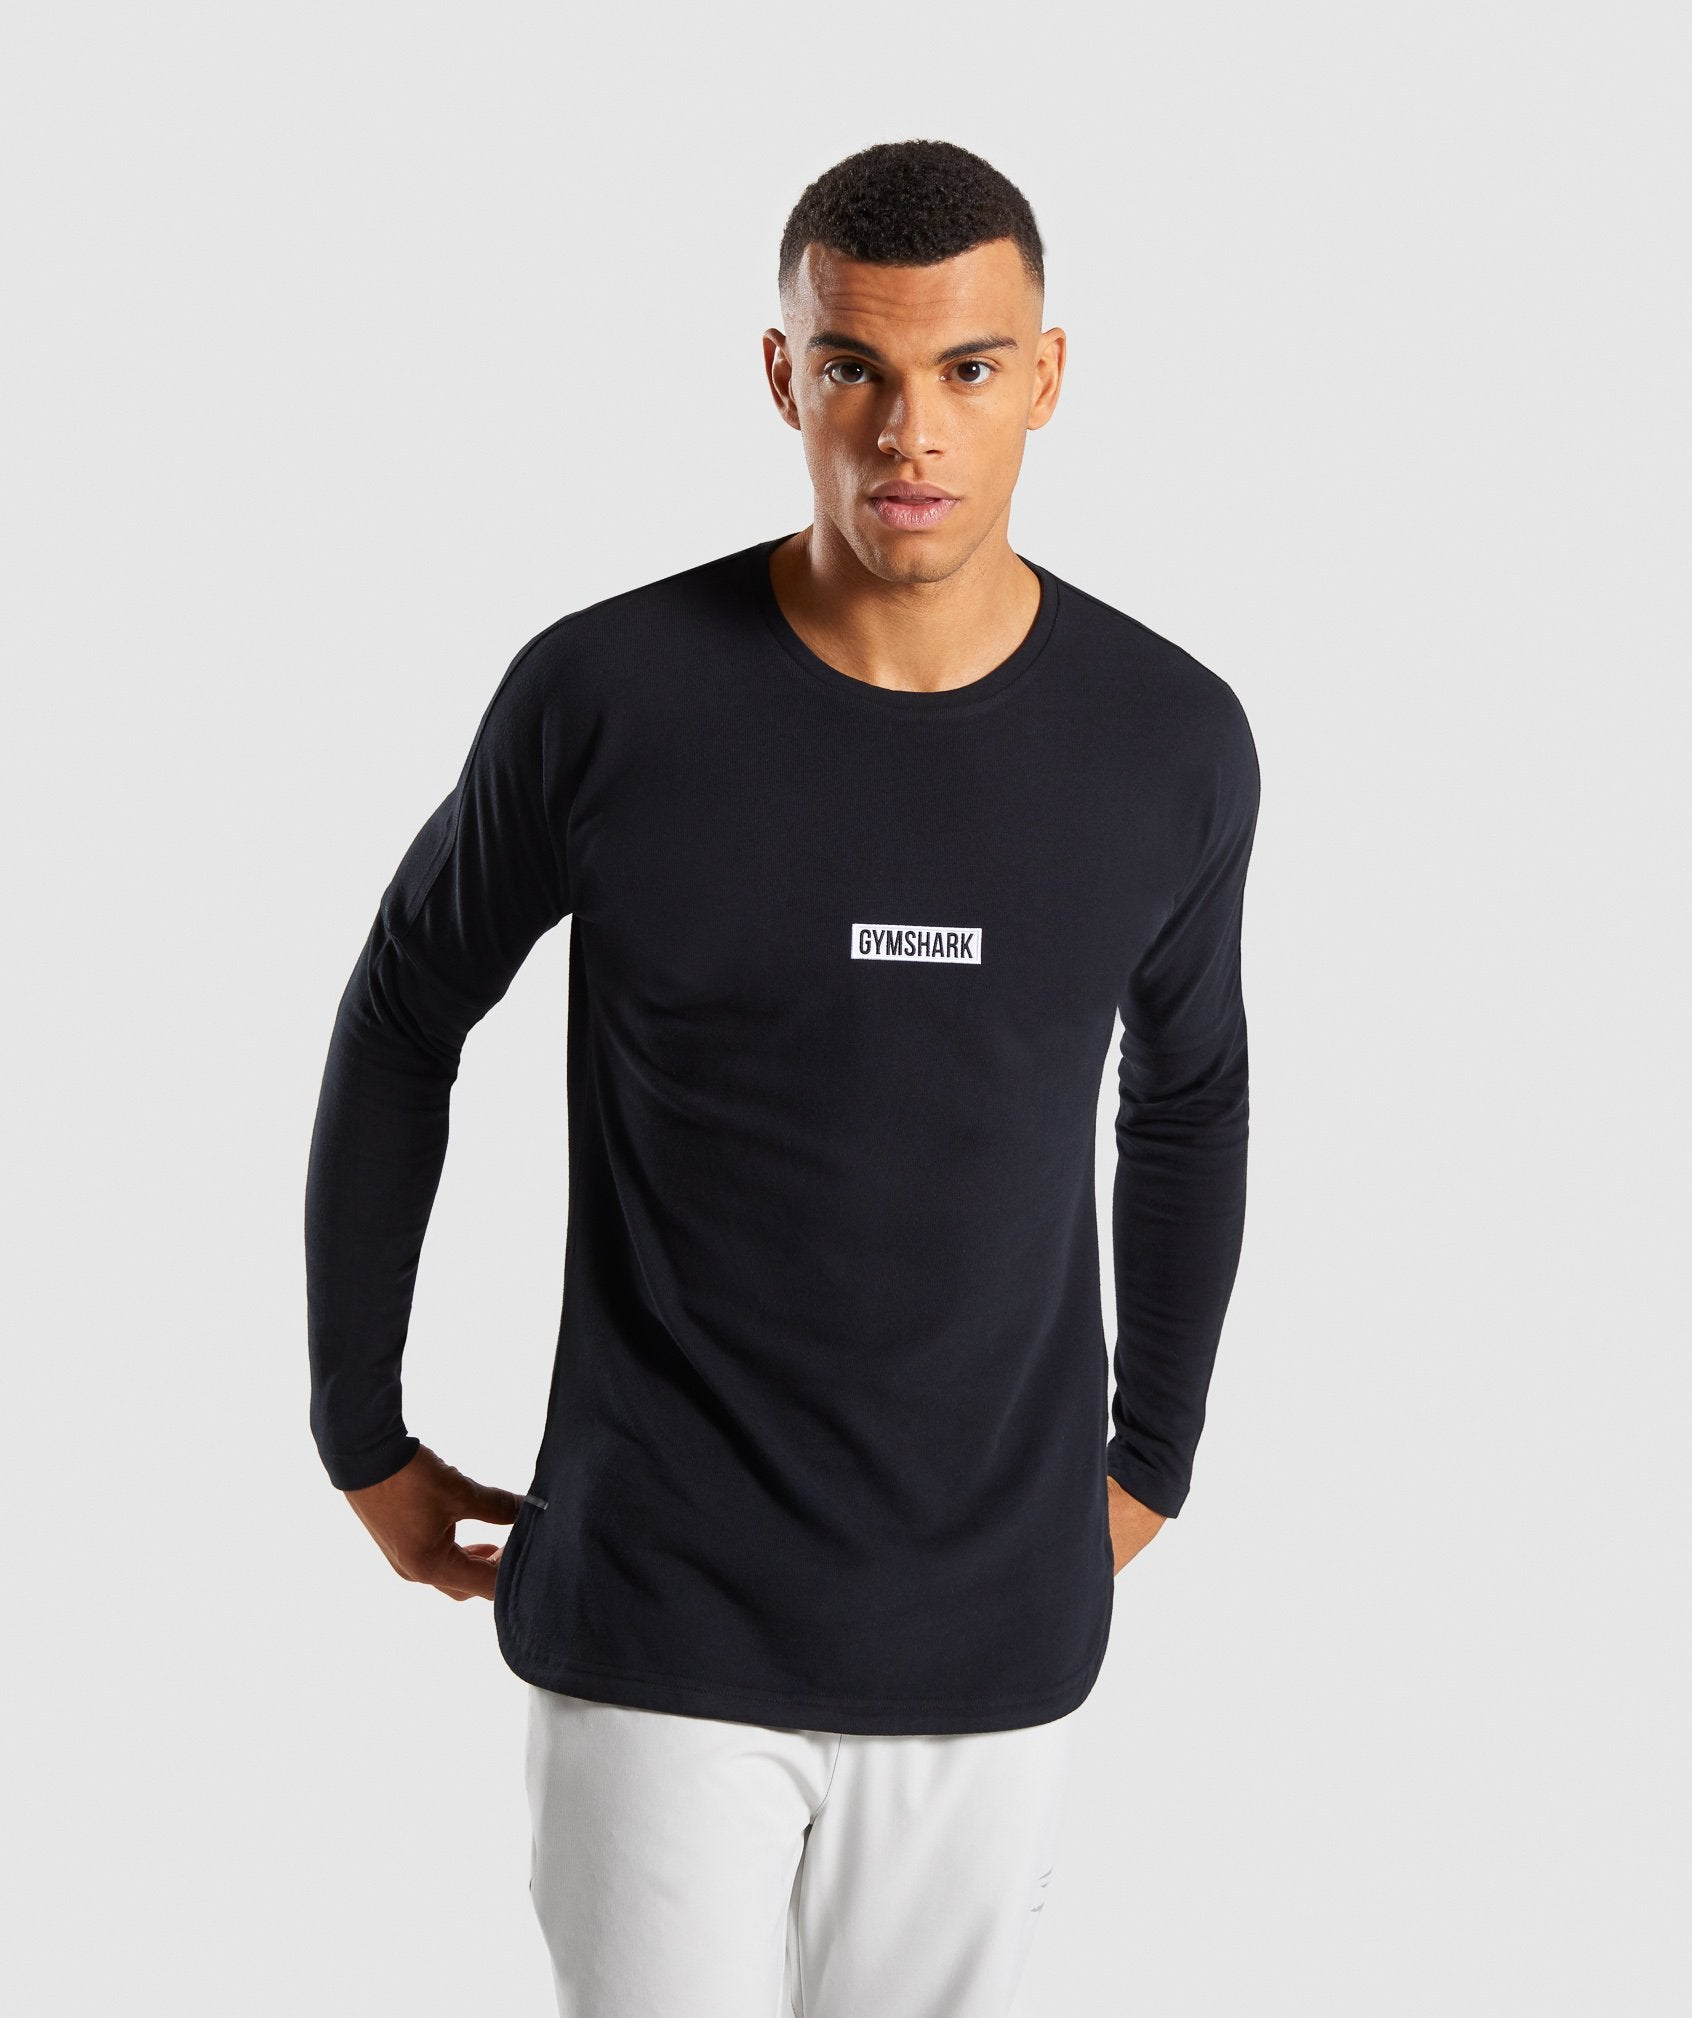 adf739196b5 Gymshark Apollo Long Sleeve T-Shirt - Black